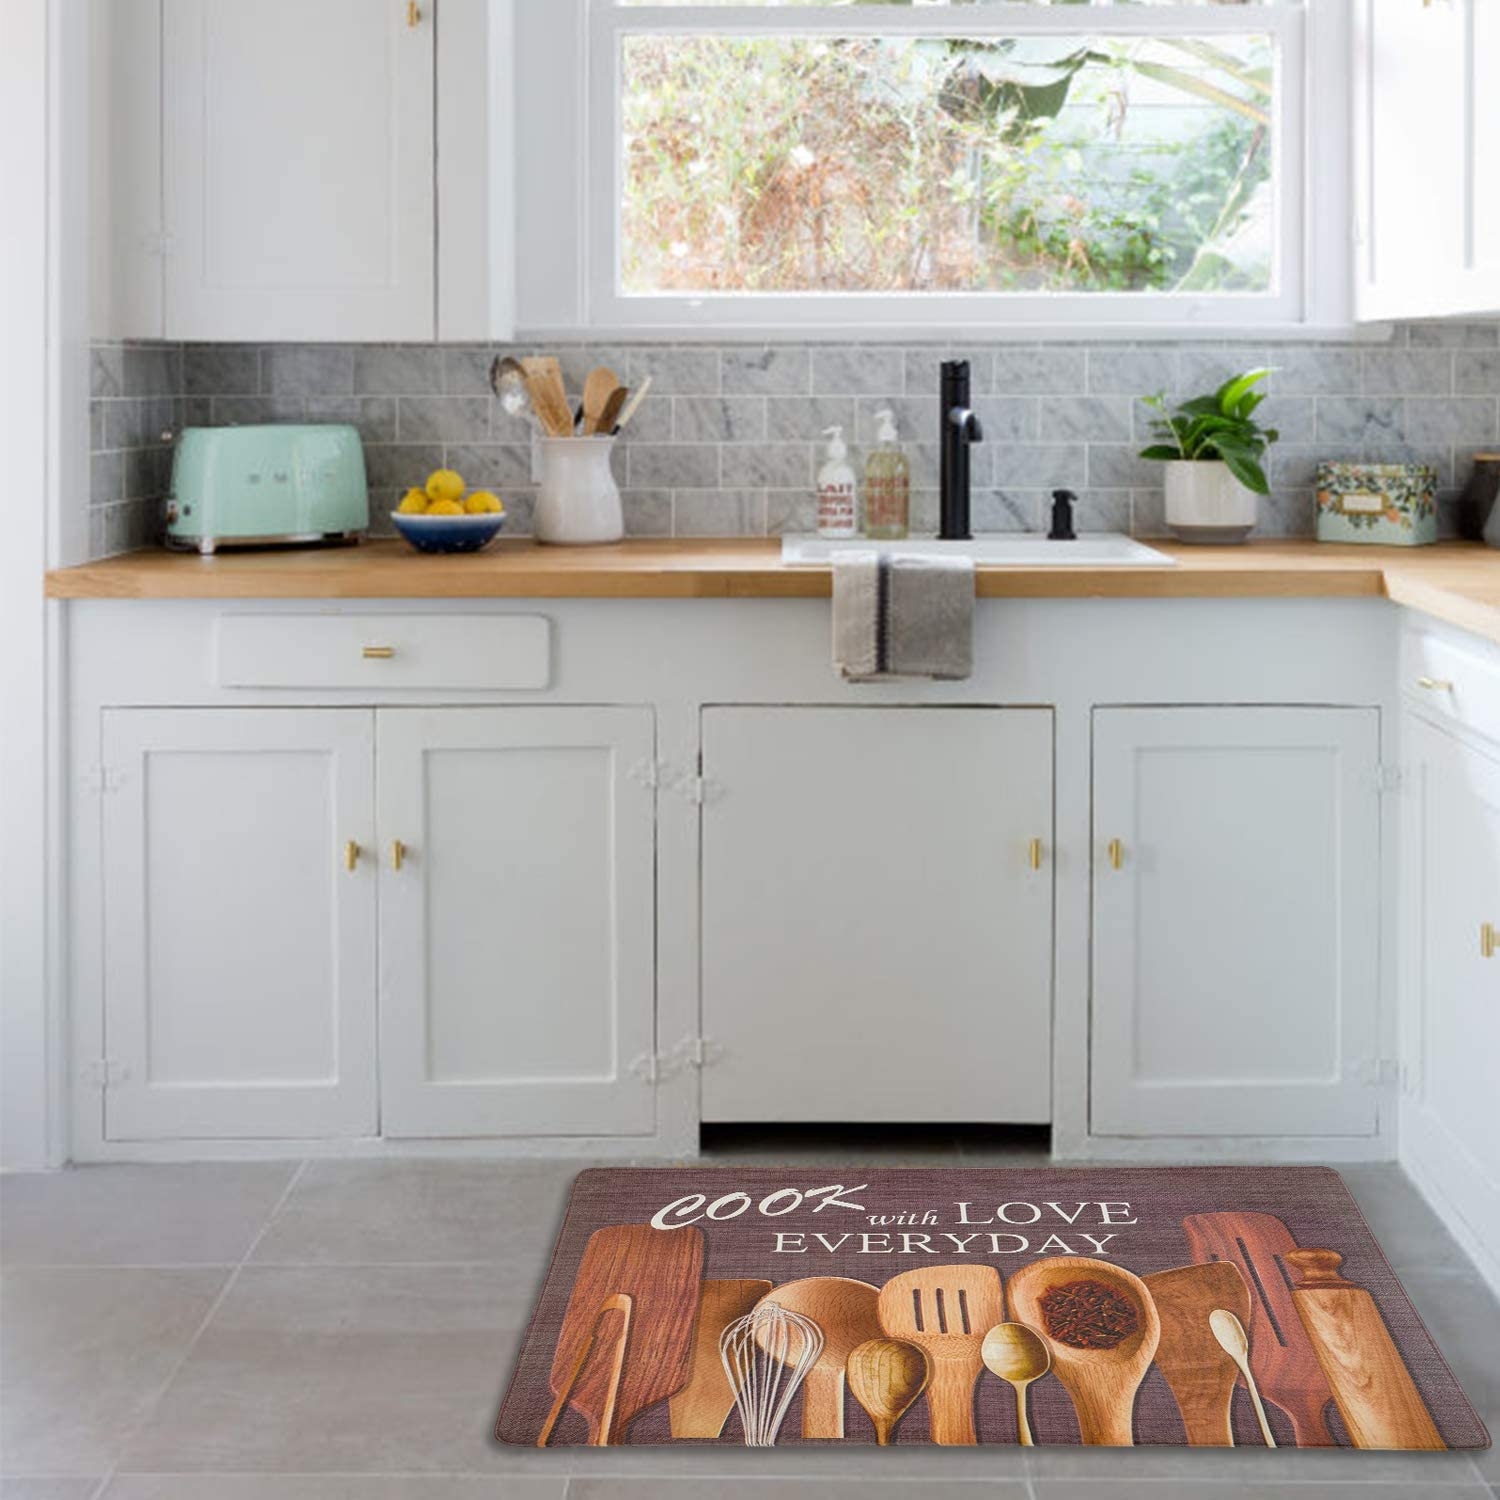 Kitchen Dining Evergrace Printing Farmhouse Rooster Anti Fatigue Floor Mat 18 X 30 Durable Stain Resistant Cushioned Standing Comfort With Non Slip Bottom Utensils Gadgets